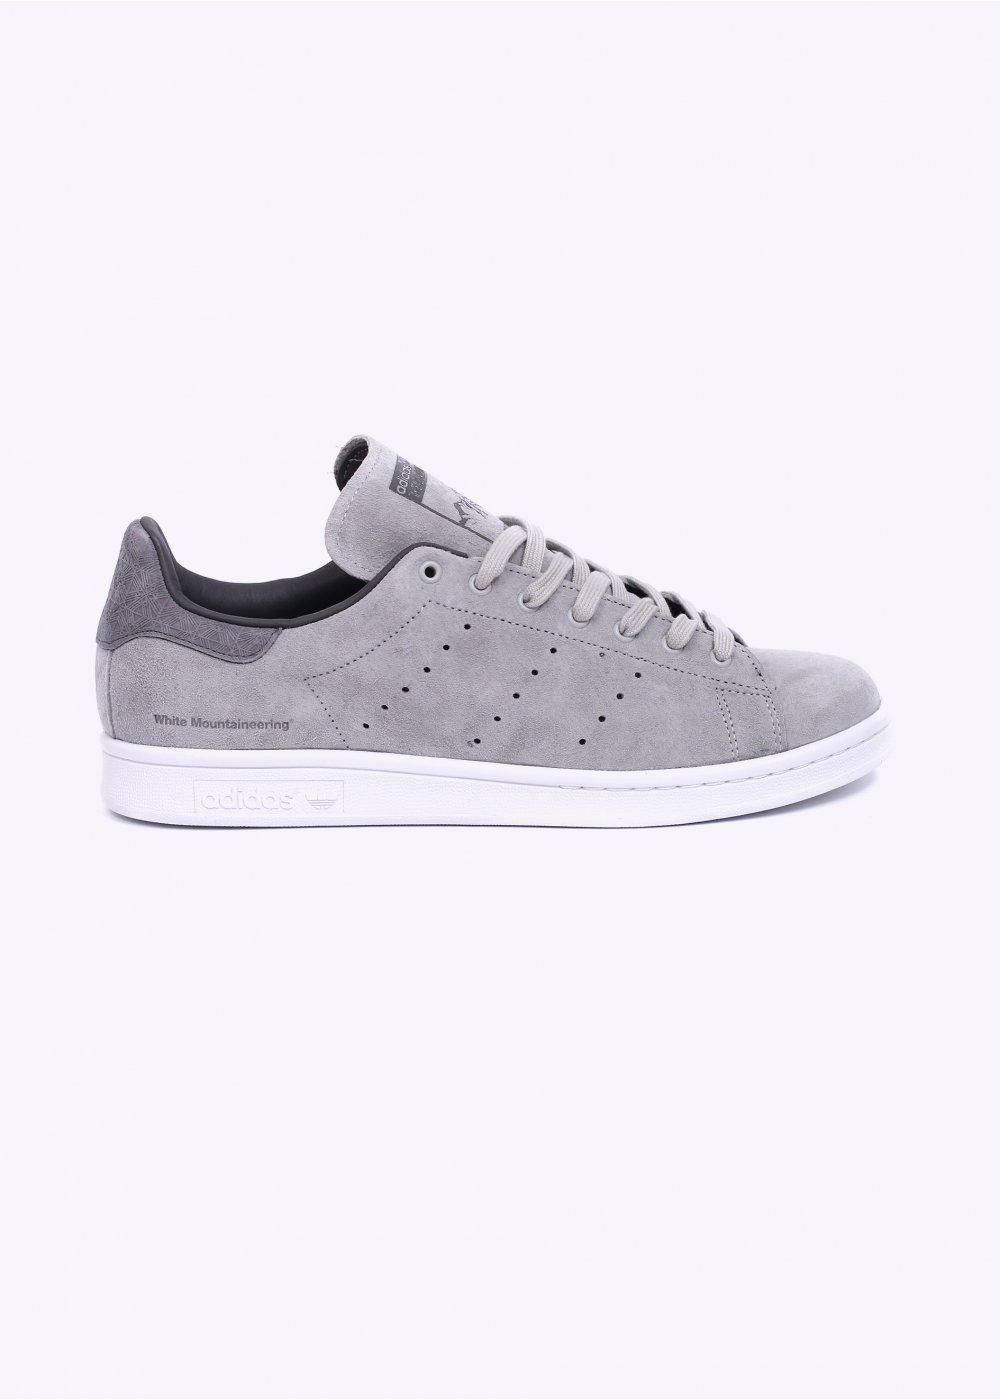 new style 891cf 7bffd adidas Originals Footwear x White Mountaineering Stan Smith Trainers - Onix  / White